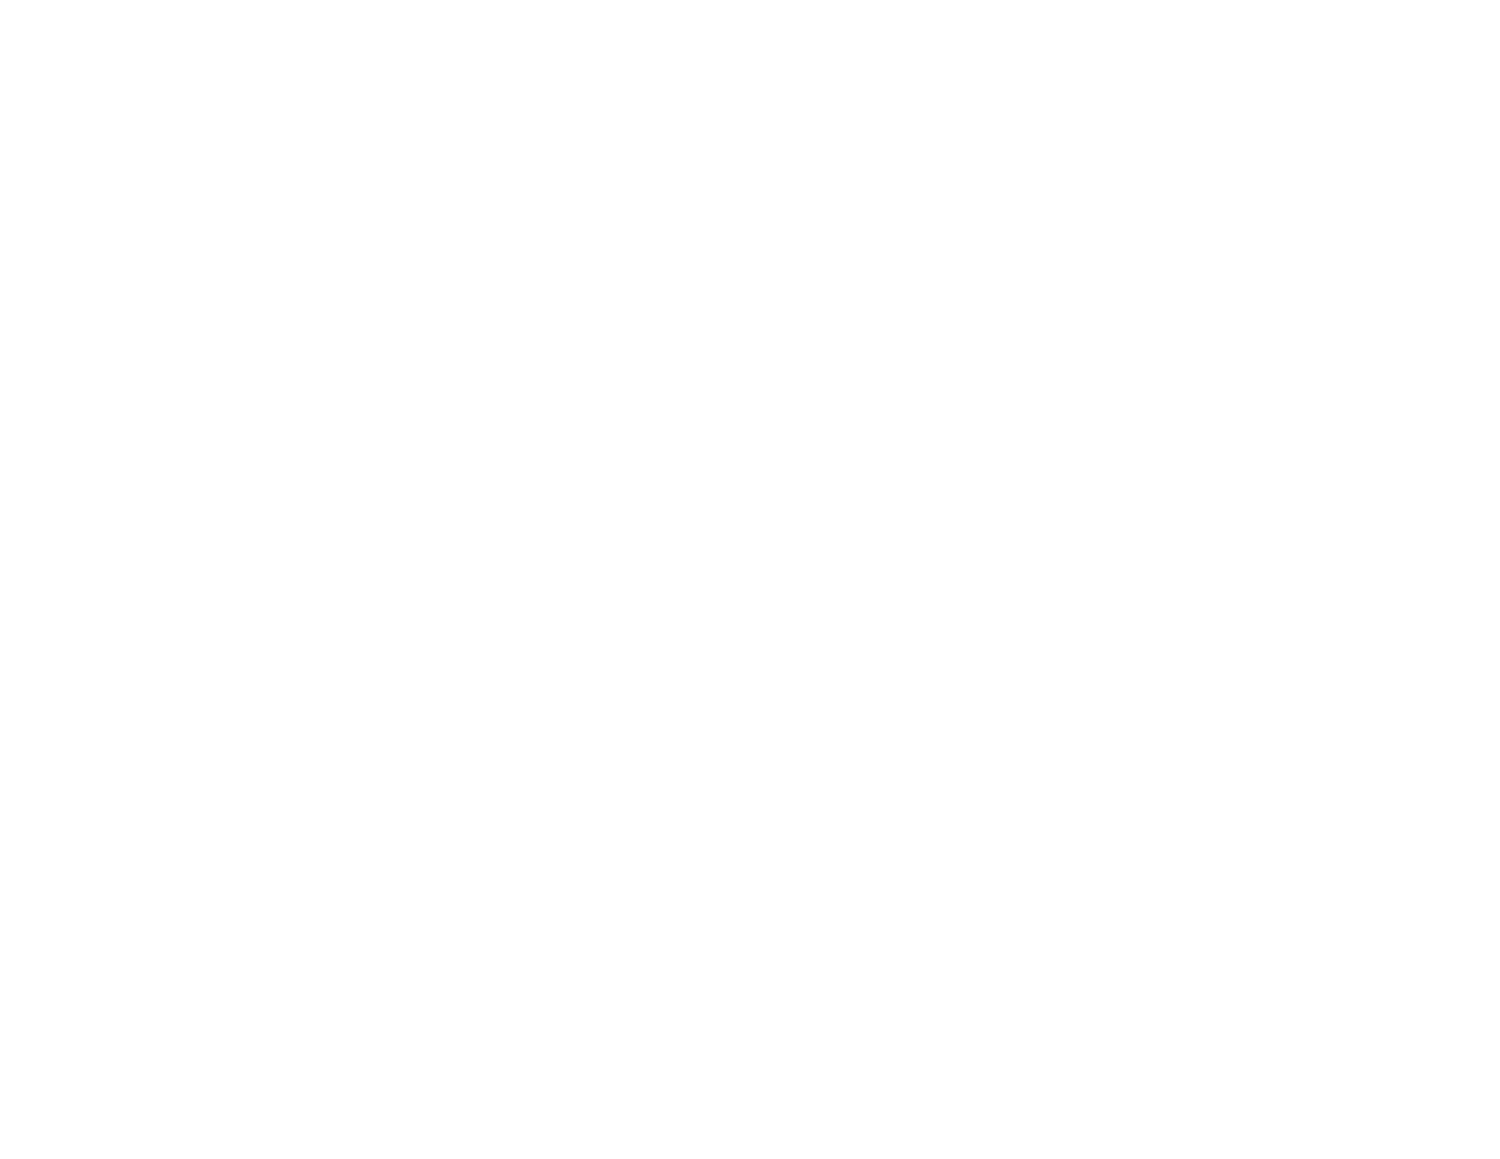 Sound Life Church | Tacoma & Orting, WA